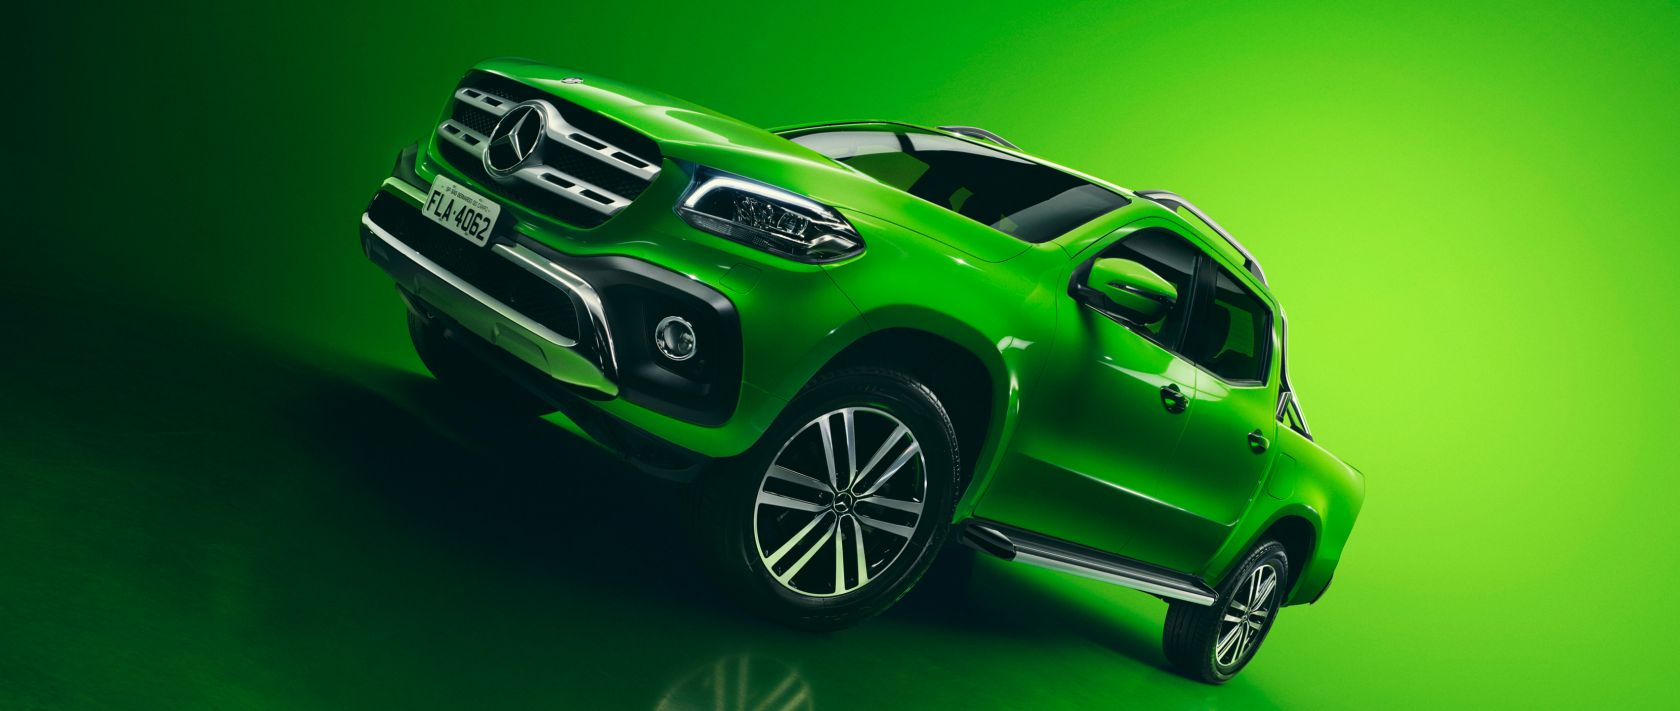 The Mercedes-Benz X 250 d 4MATIC in green with green background.